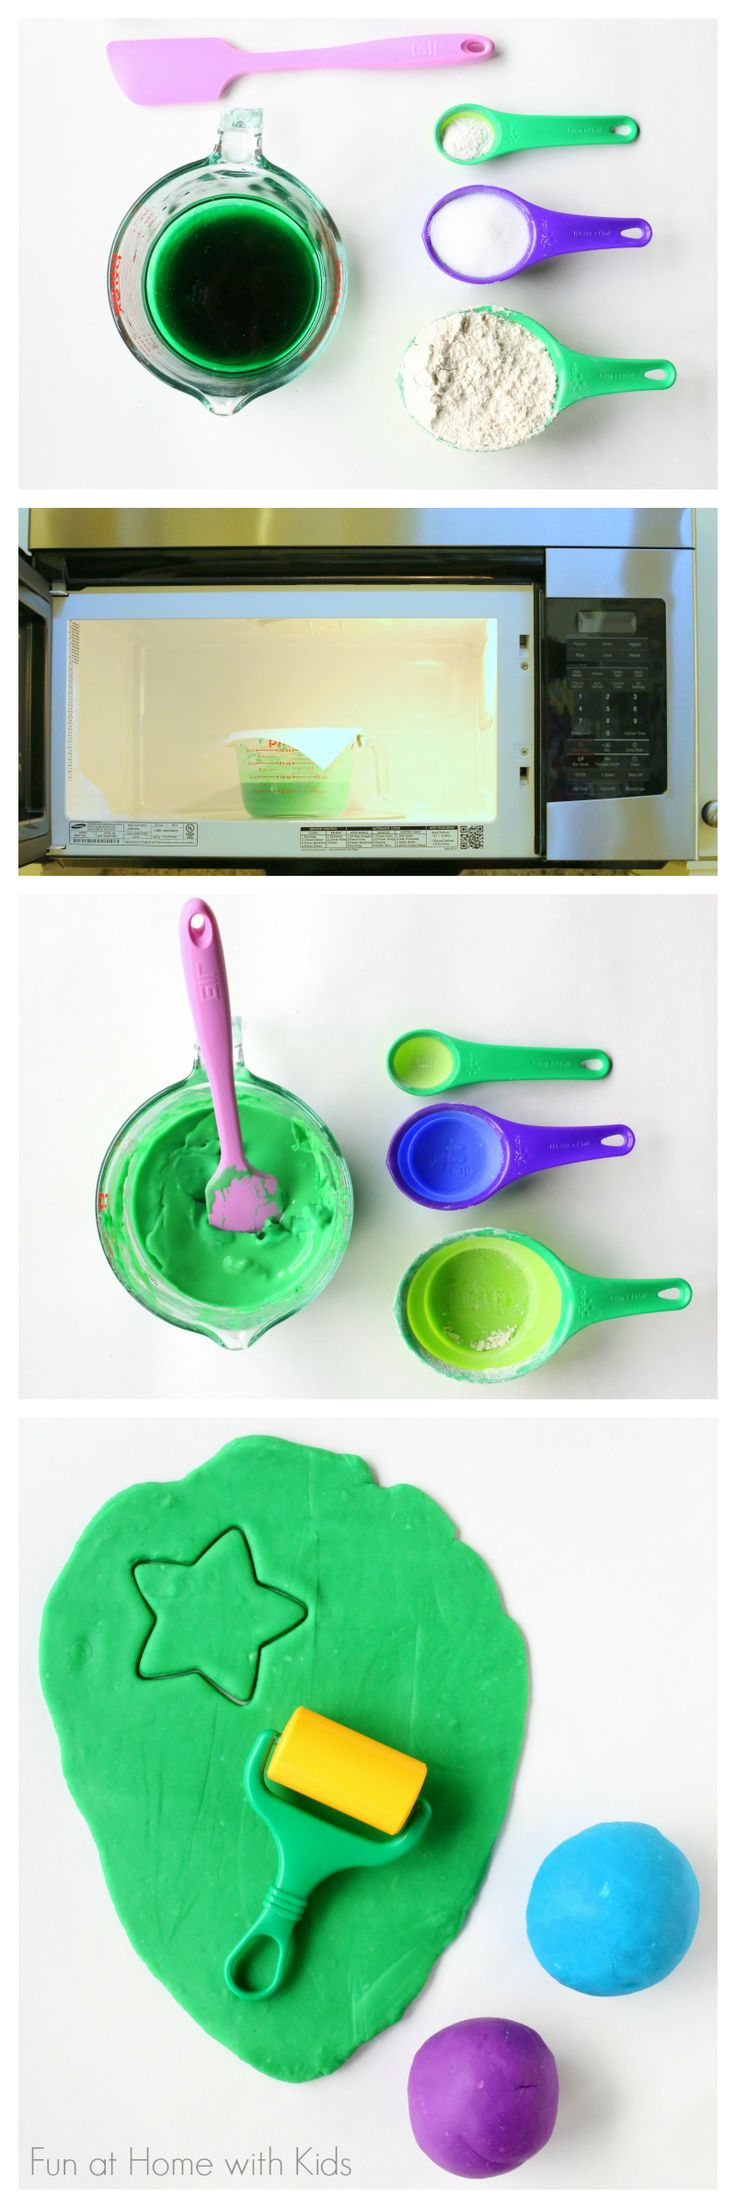 Easiest ever 5 MINUTE MICROWAVE homemade playdough from Fun at Home with Kids